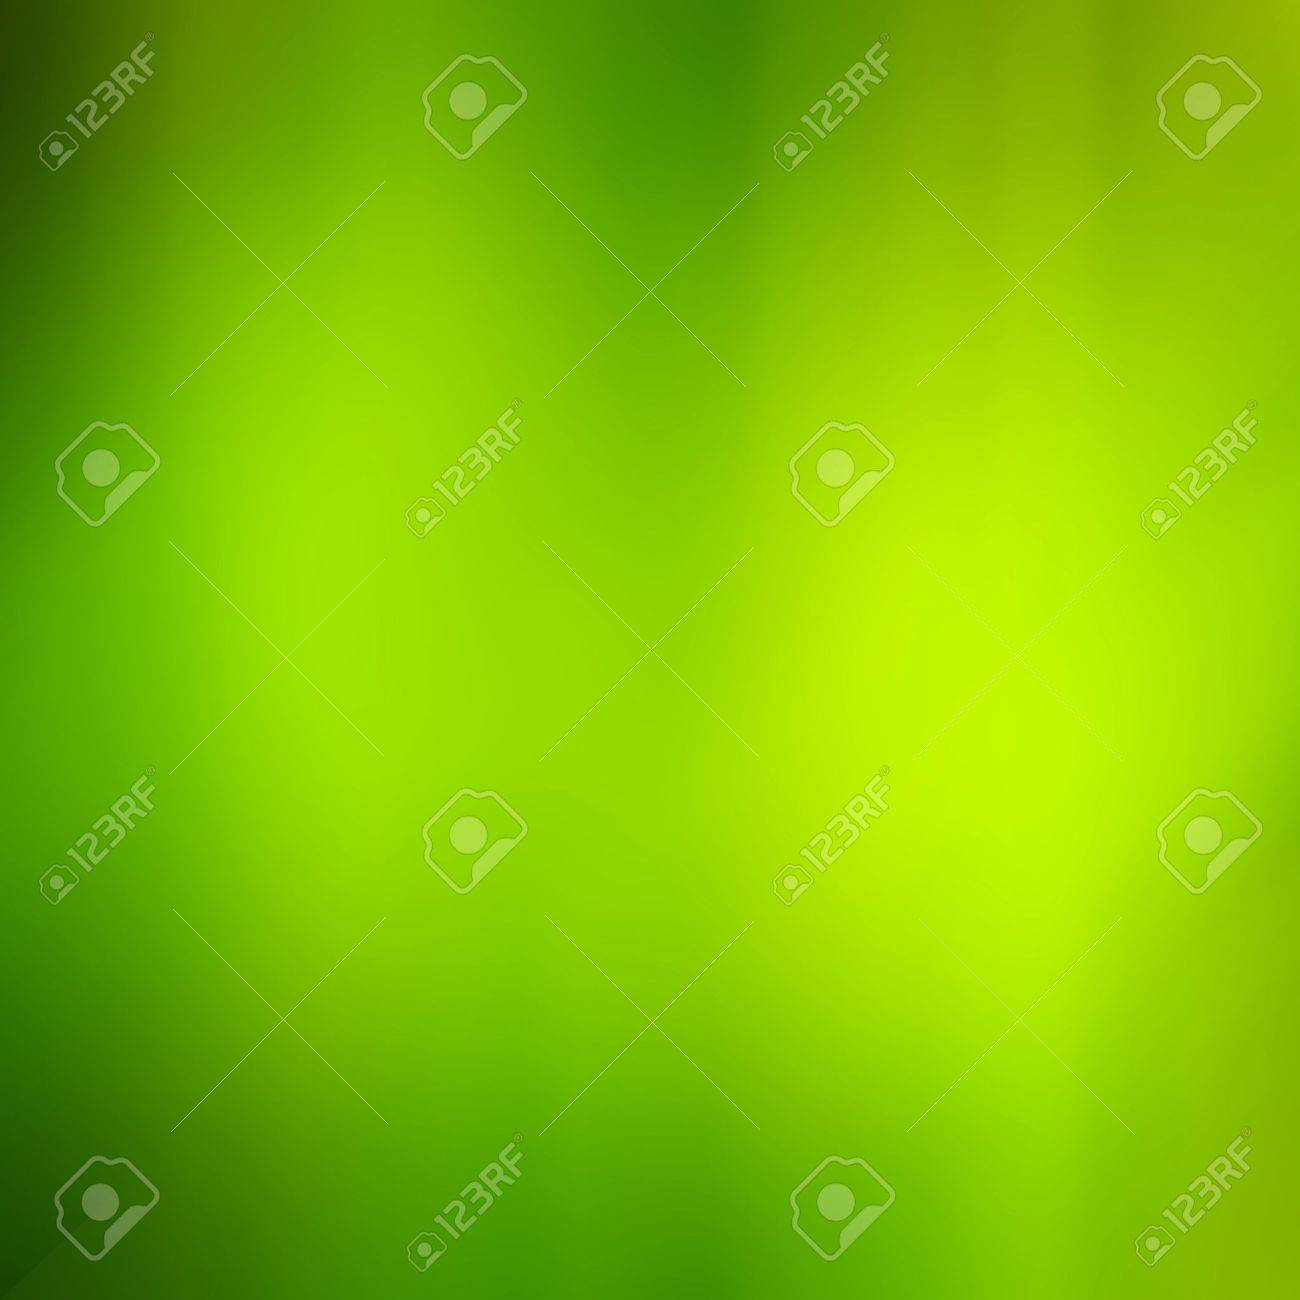 Background green dark abstract pattern Stock Photo - 21075707